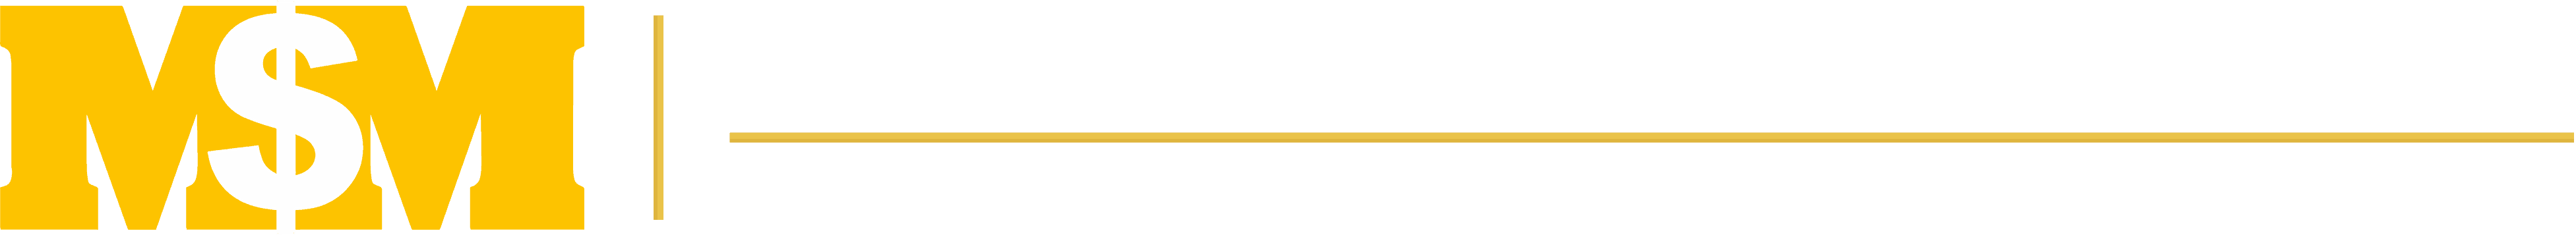 Money Management Services Gold Logo